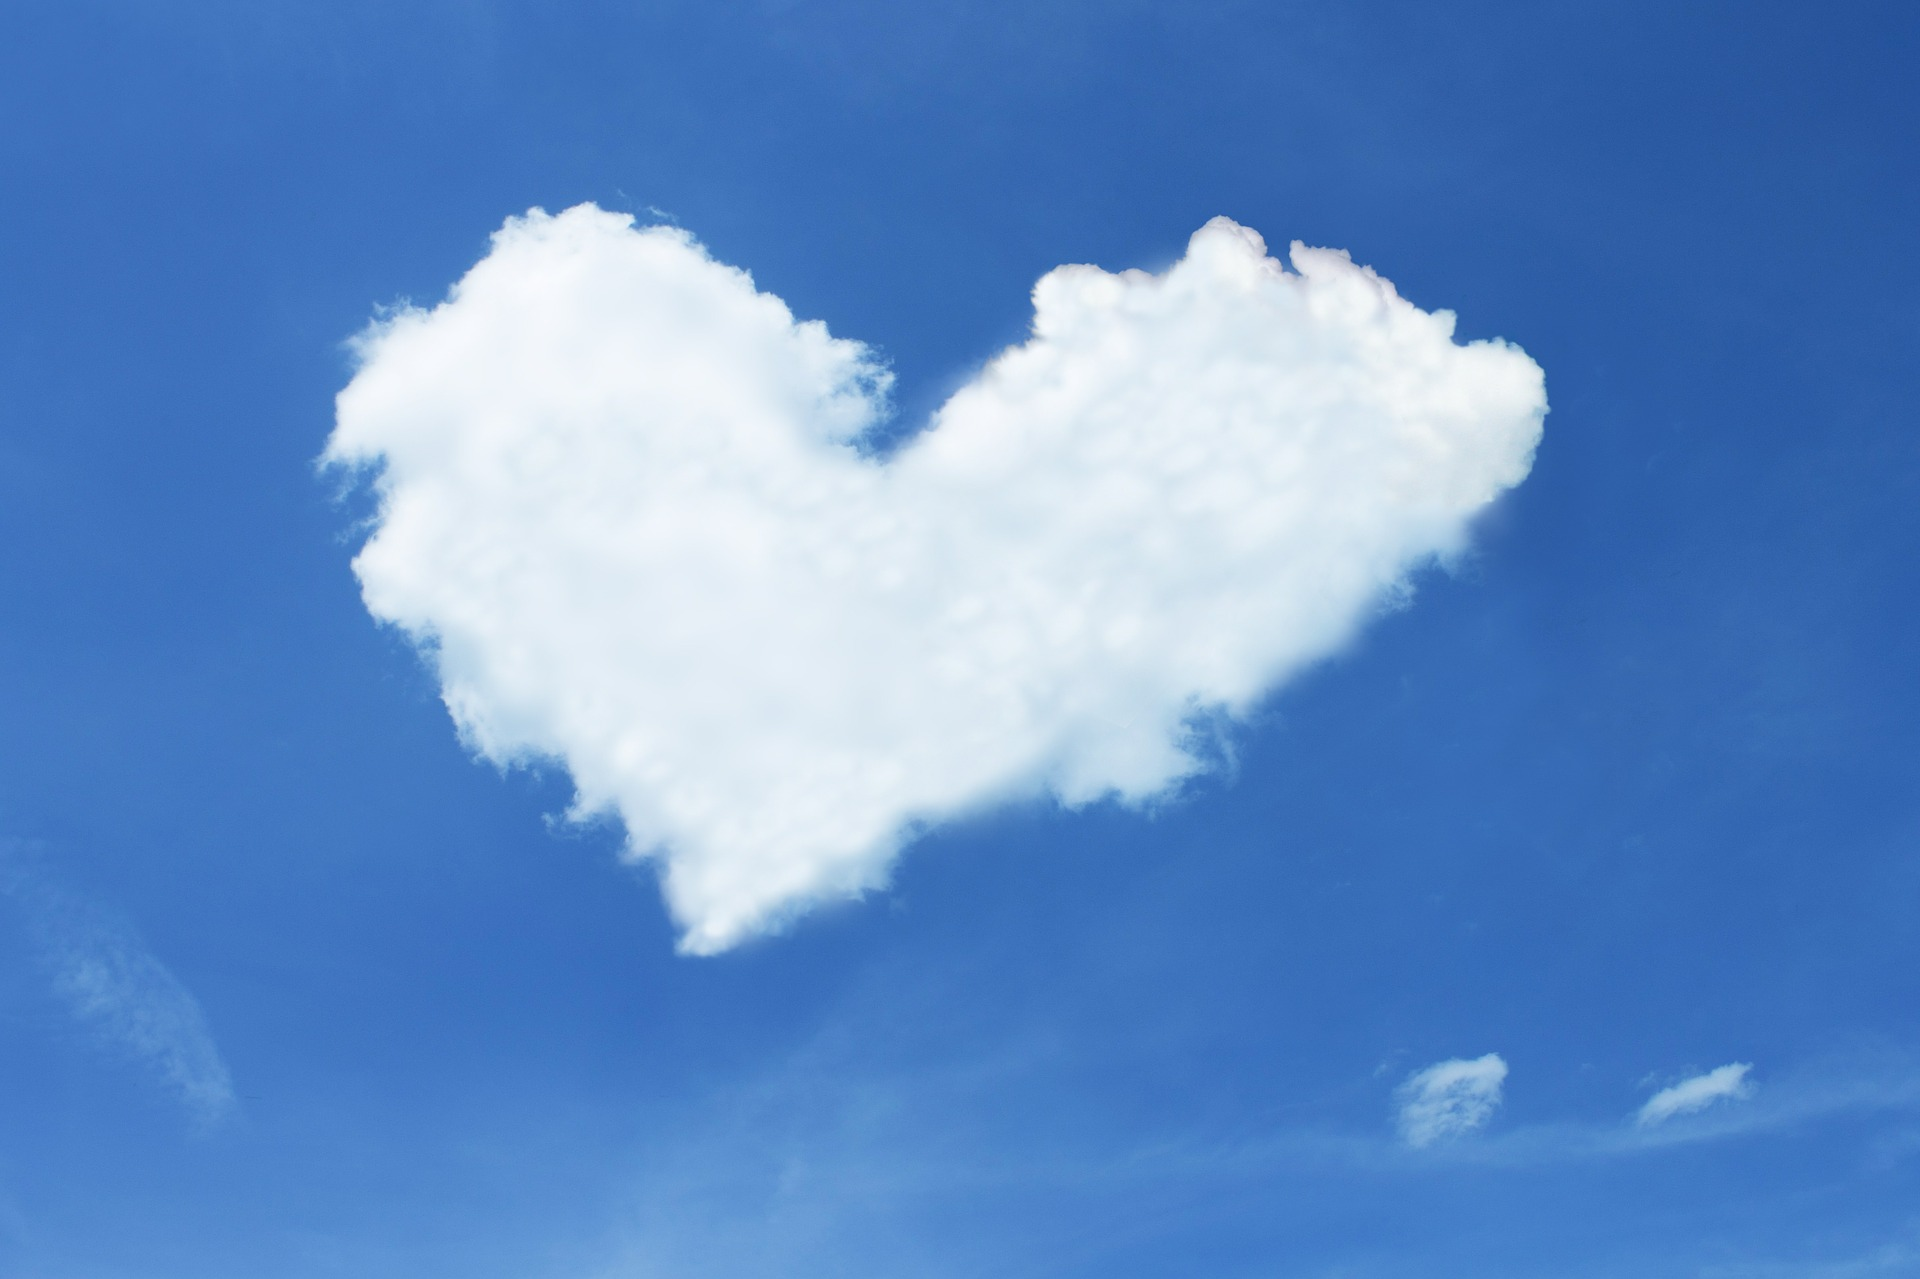 A heart shaped cloud in the sky